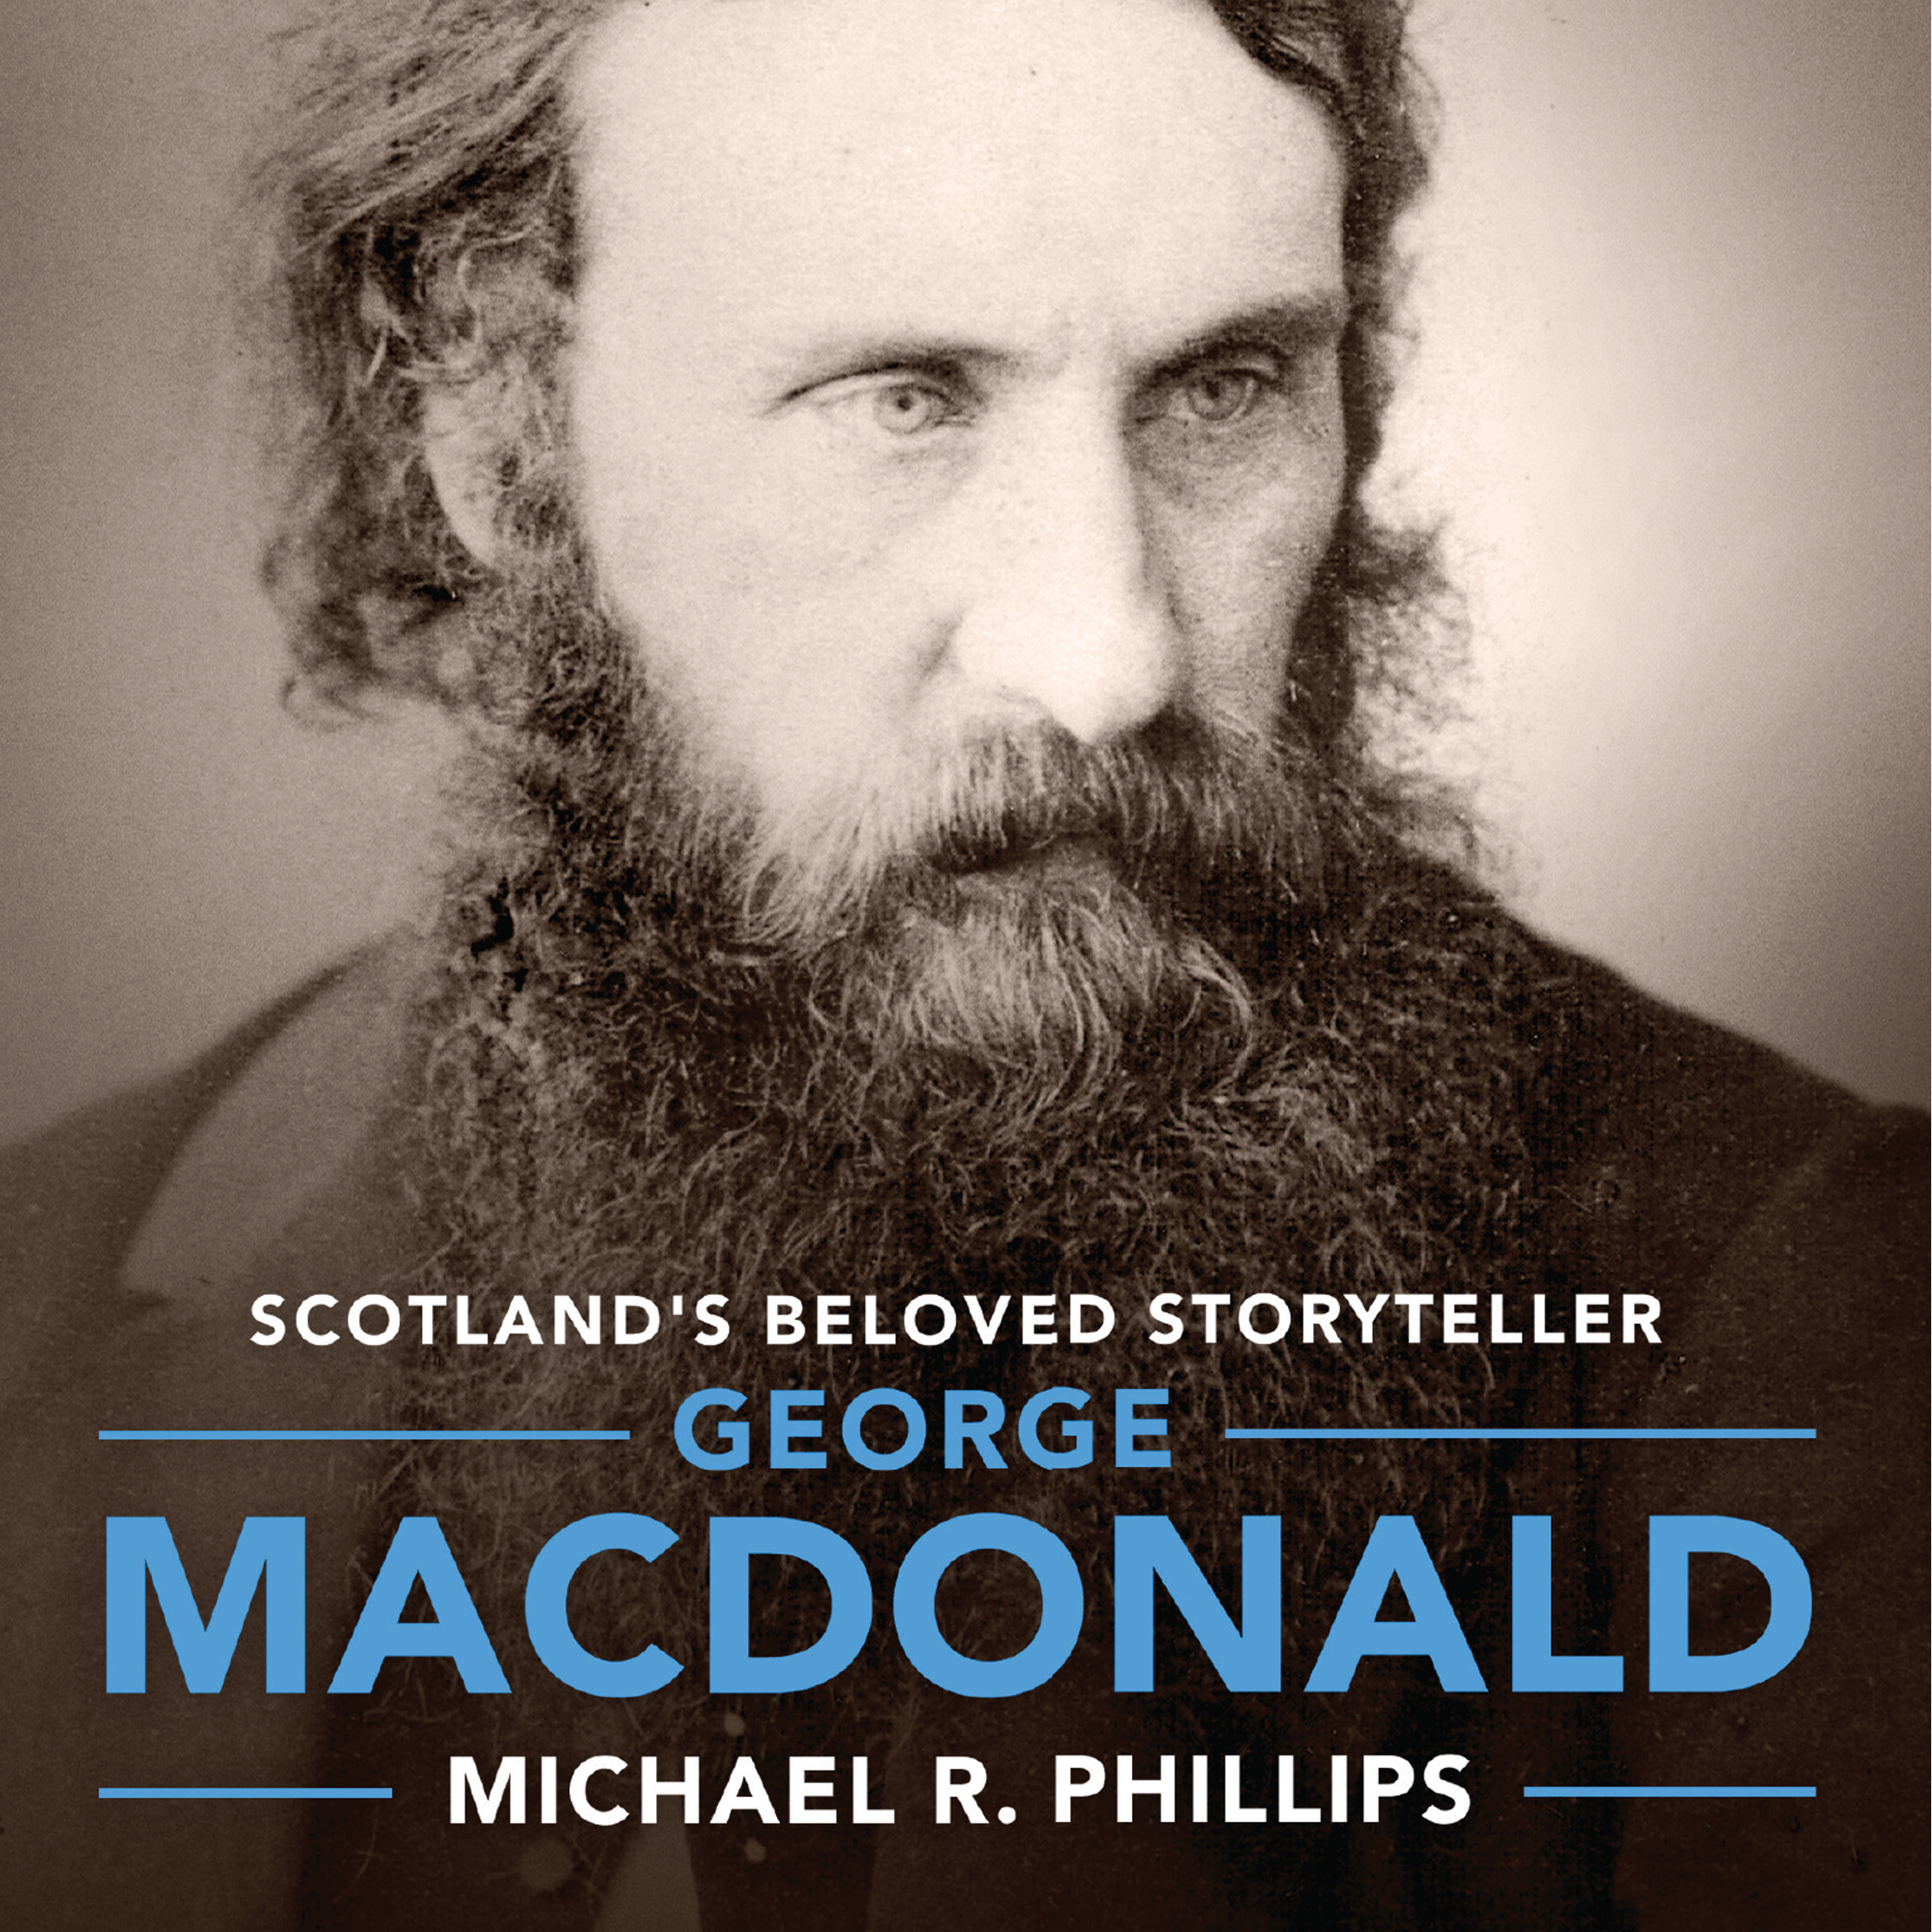 Printable George MacDonald: A Biography of Scotland's Beloved Storyteller Audiobook Cover Art